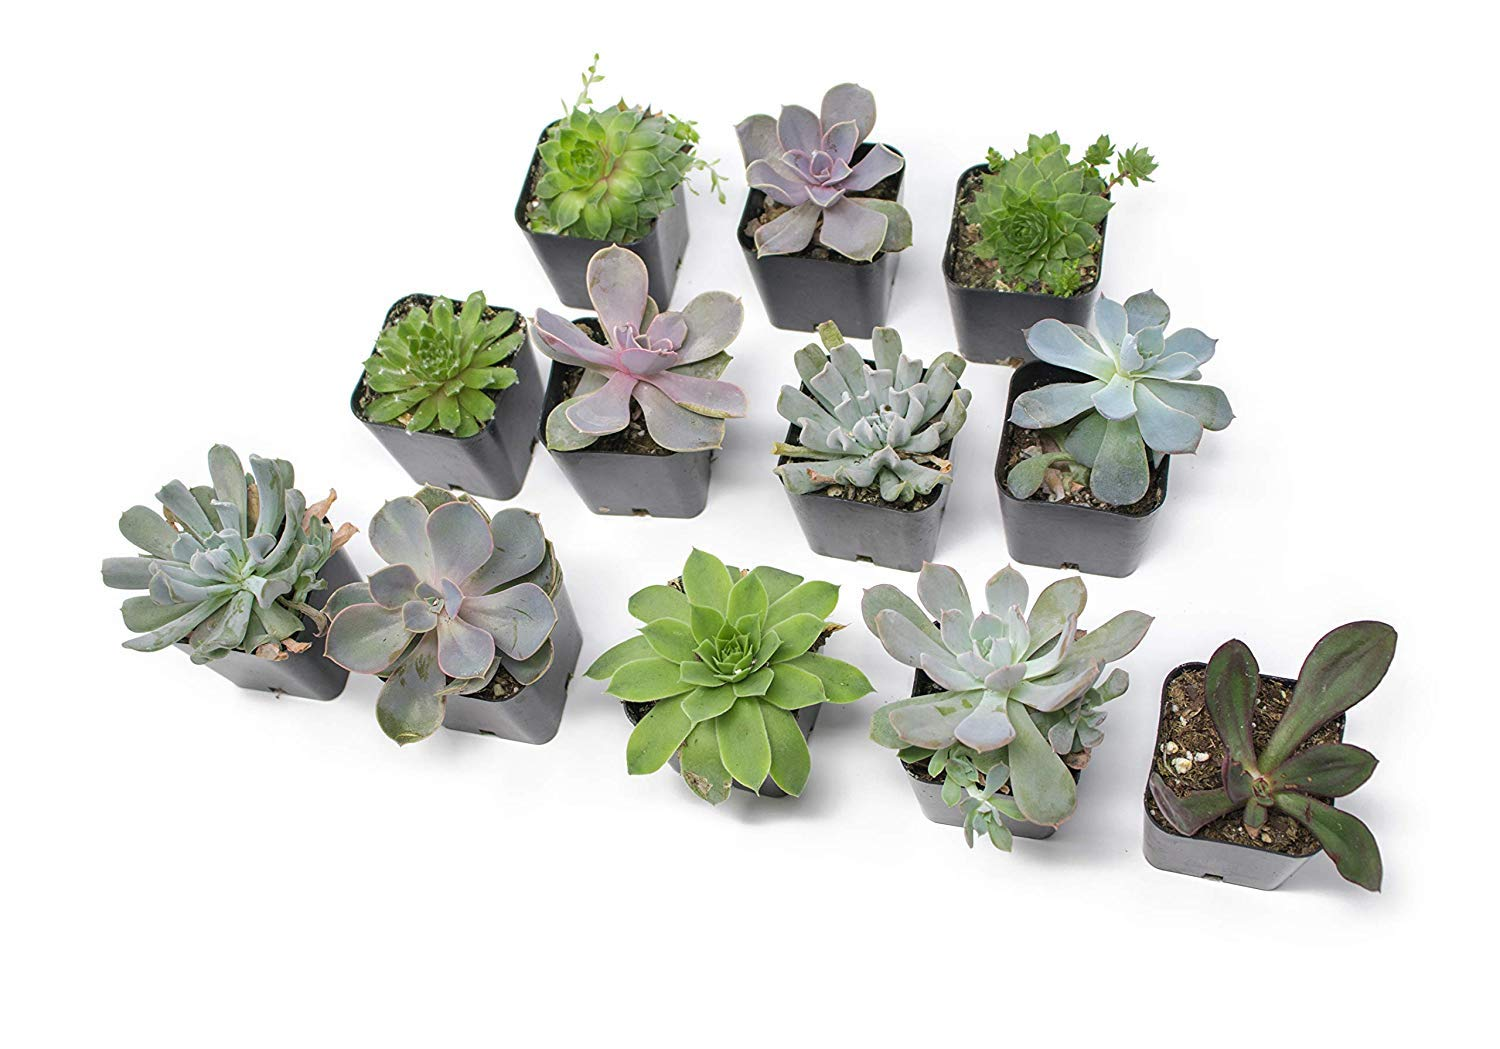 20 Live ''B-Grade'' Succulents | House Plants with Minor Flaws | Healthy Discounted Cheap Succulent Plants in Planter Pots with Soil by Plants for Pets by Plants for Pets (Image #8)